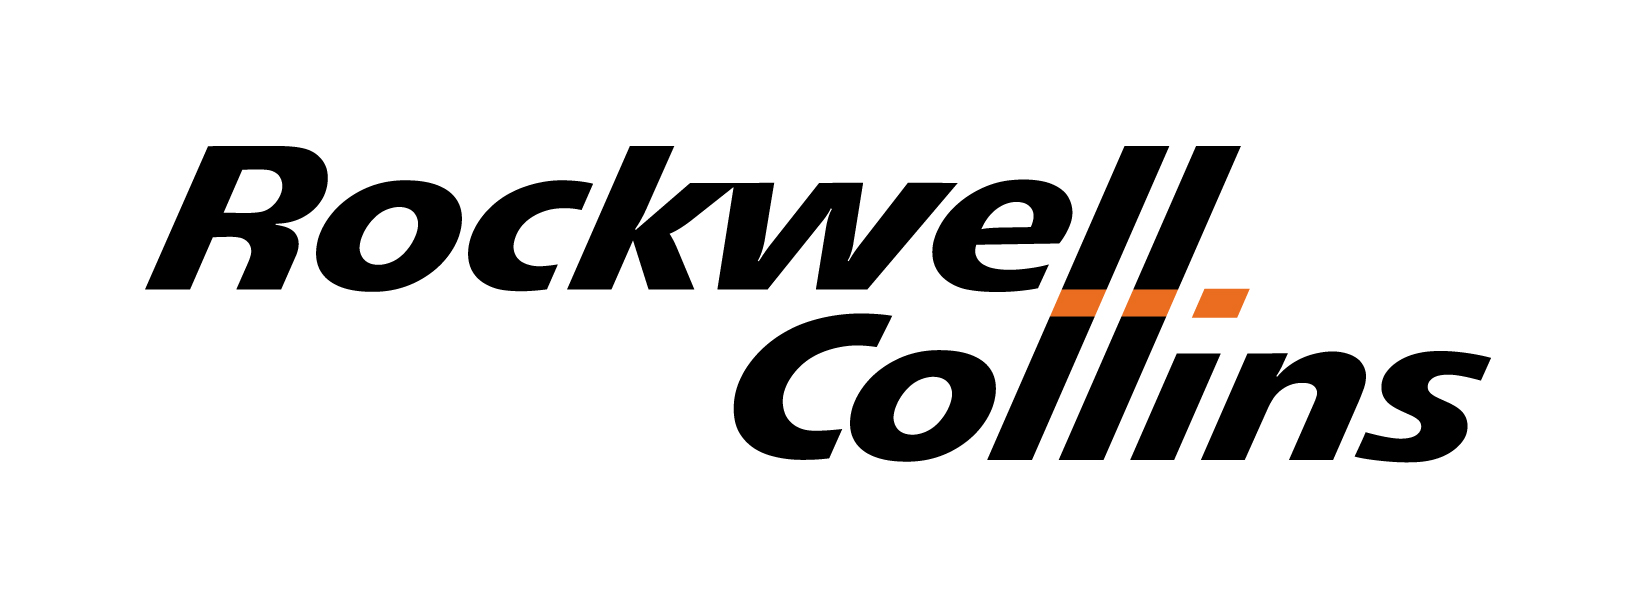 4. Rockwell Collins (Mission)